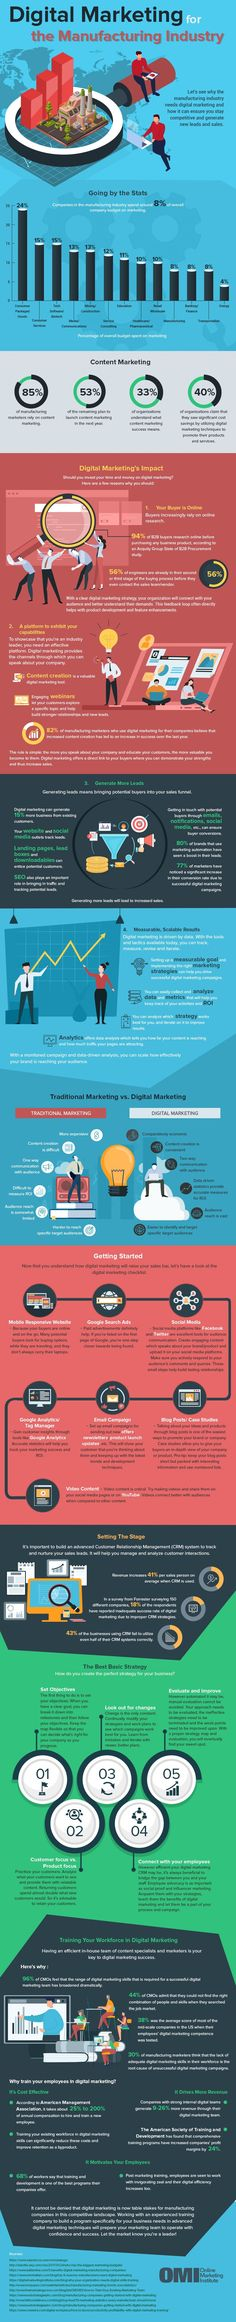 Infographic: Digital Marketing for The Manufacturing Industry - Online Marketing Institute Digital Marketing Strategy, Online Marketing, Social Media Marketing, Marketing Institute, Lead Nurturing, Steps To Success, Infographics, Budgeting, Internet Marketing